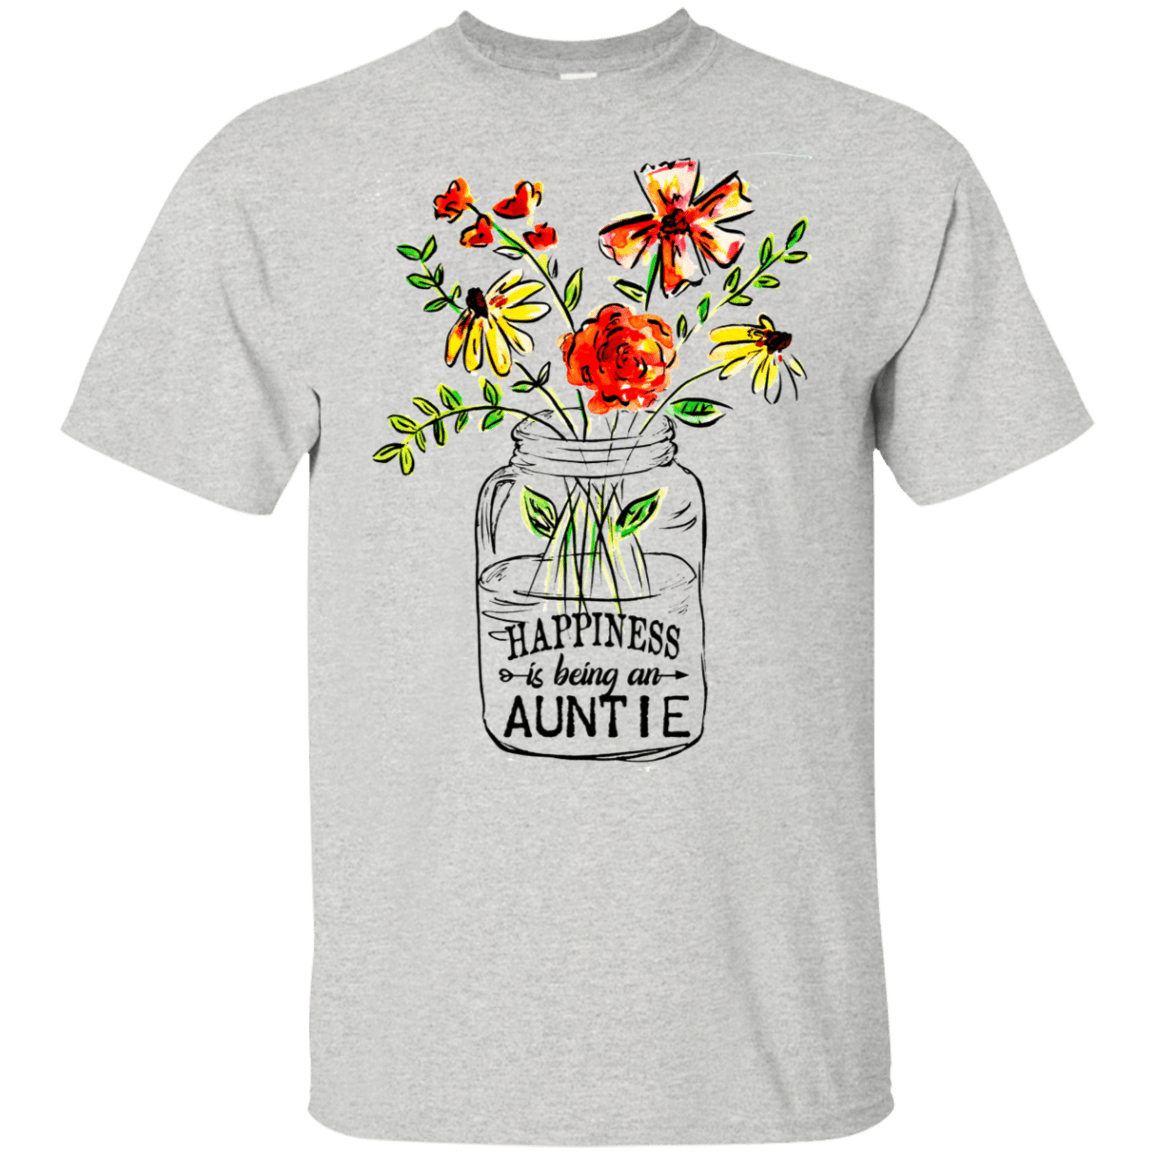 Happiness Is Being An Auntie Flower 22-2475-74371526-12568 - Tee Ript